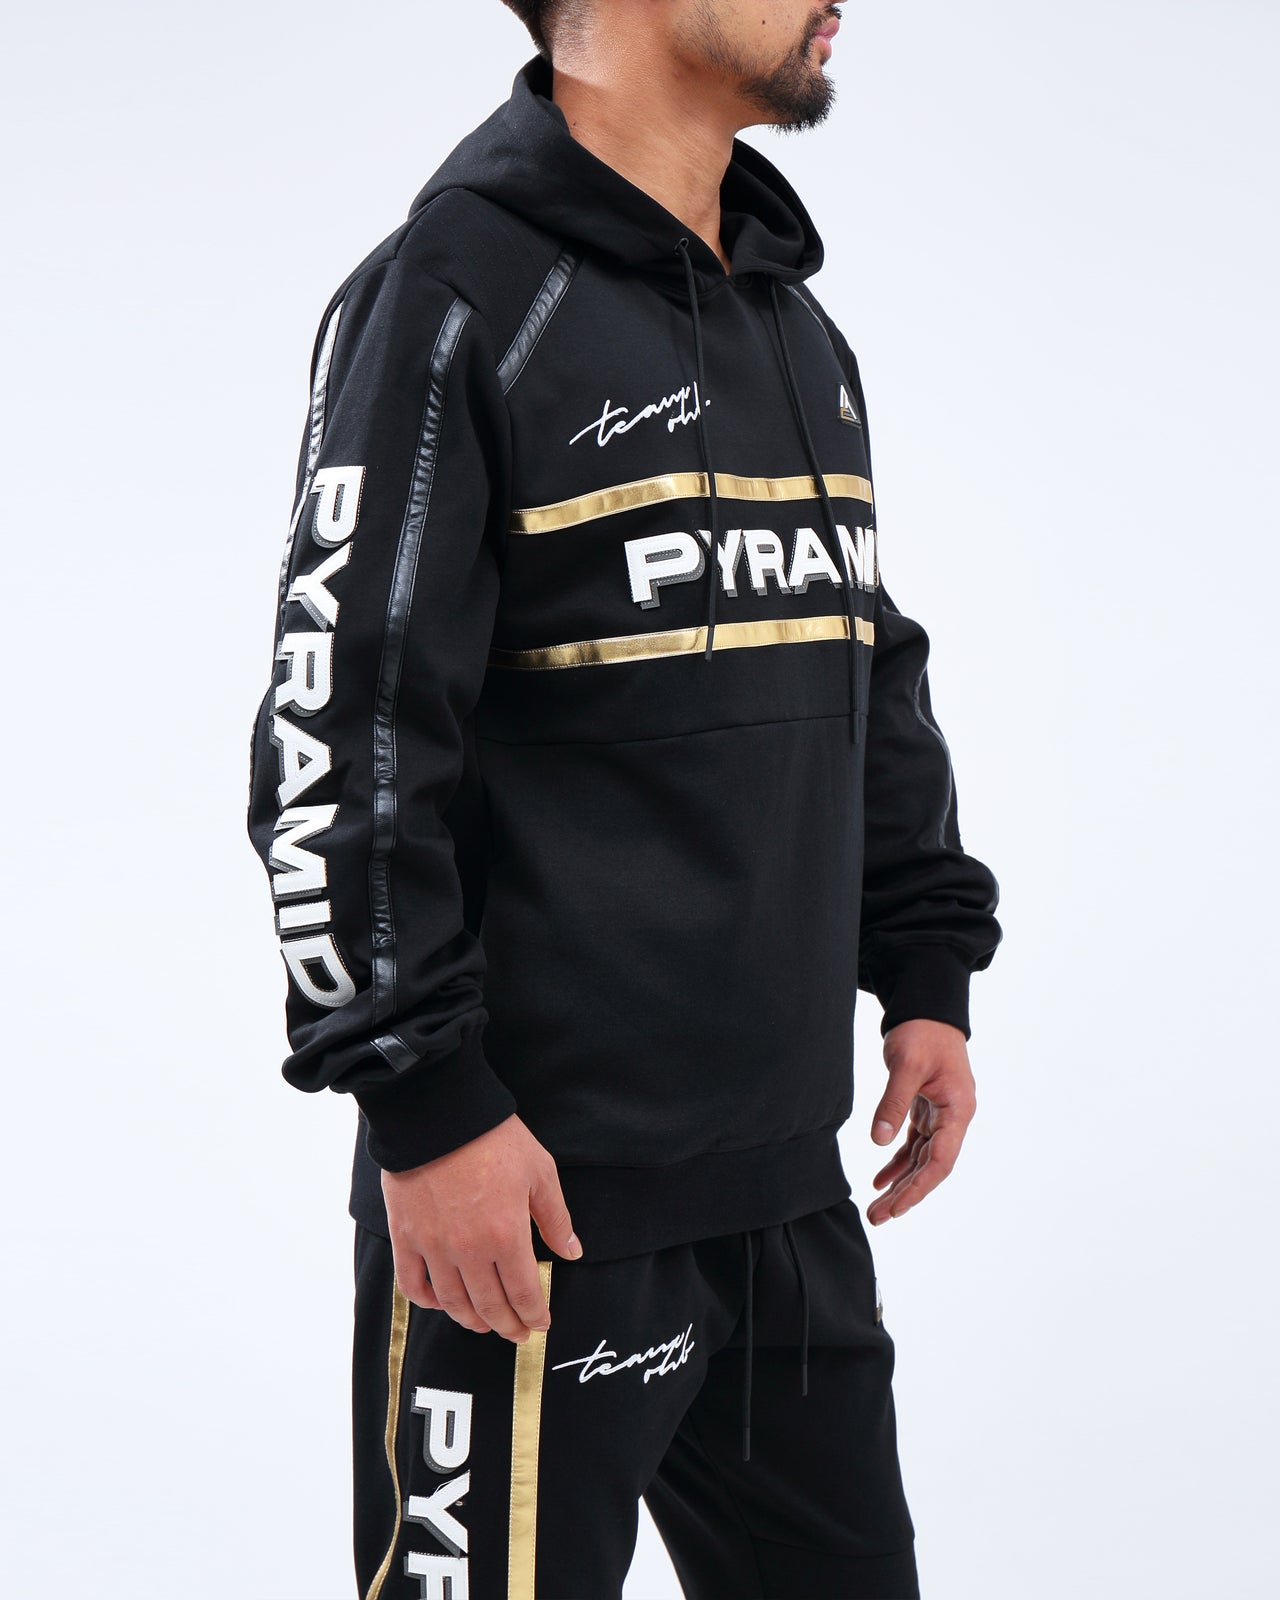 TEAM OHB BLACKOUT HOODY - Color: Black